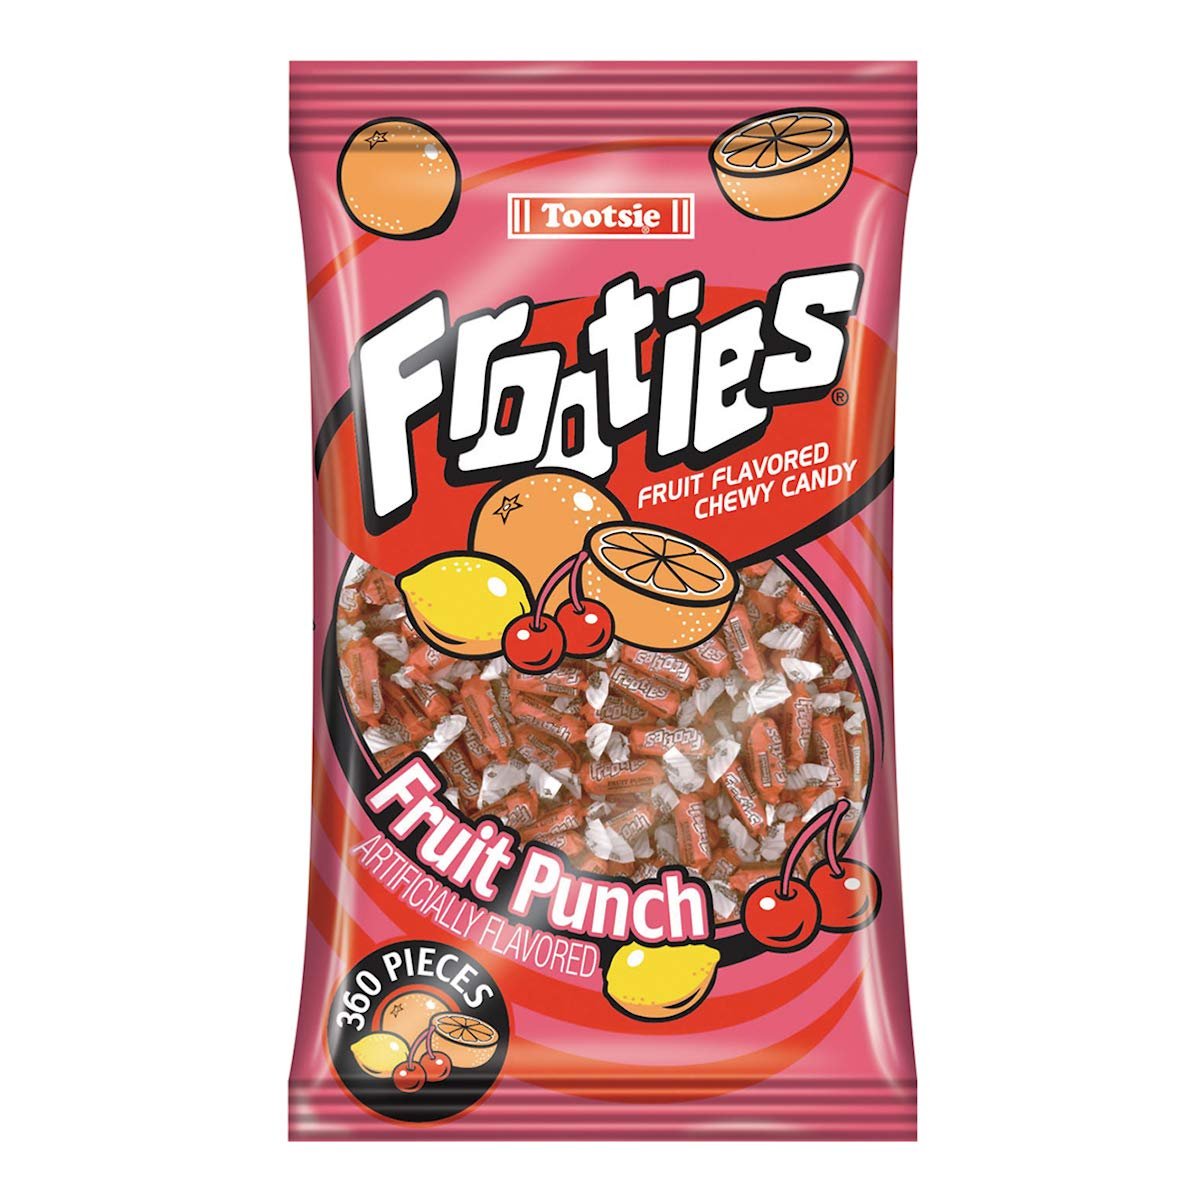 Fruit Punch Frooties - Tootsie Roll Chewy Candy - 360 Piece Count, 38.8 oz Bag